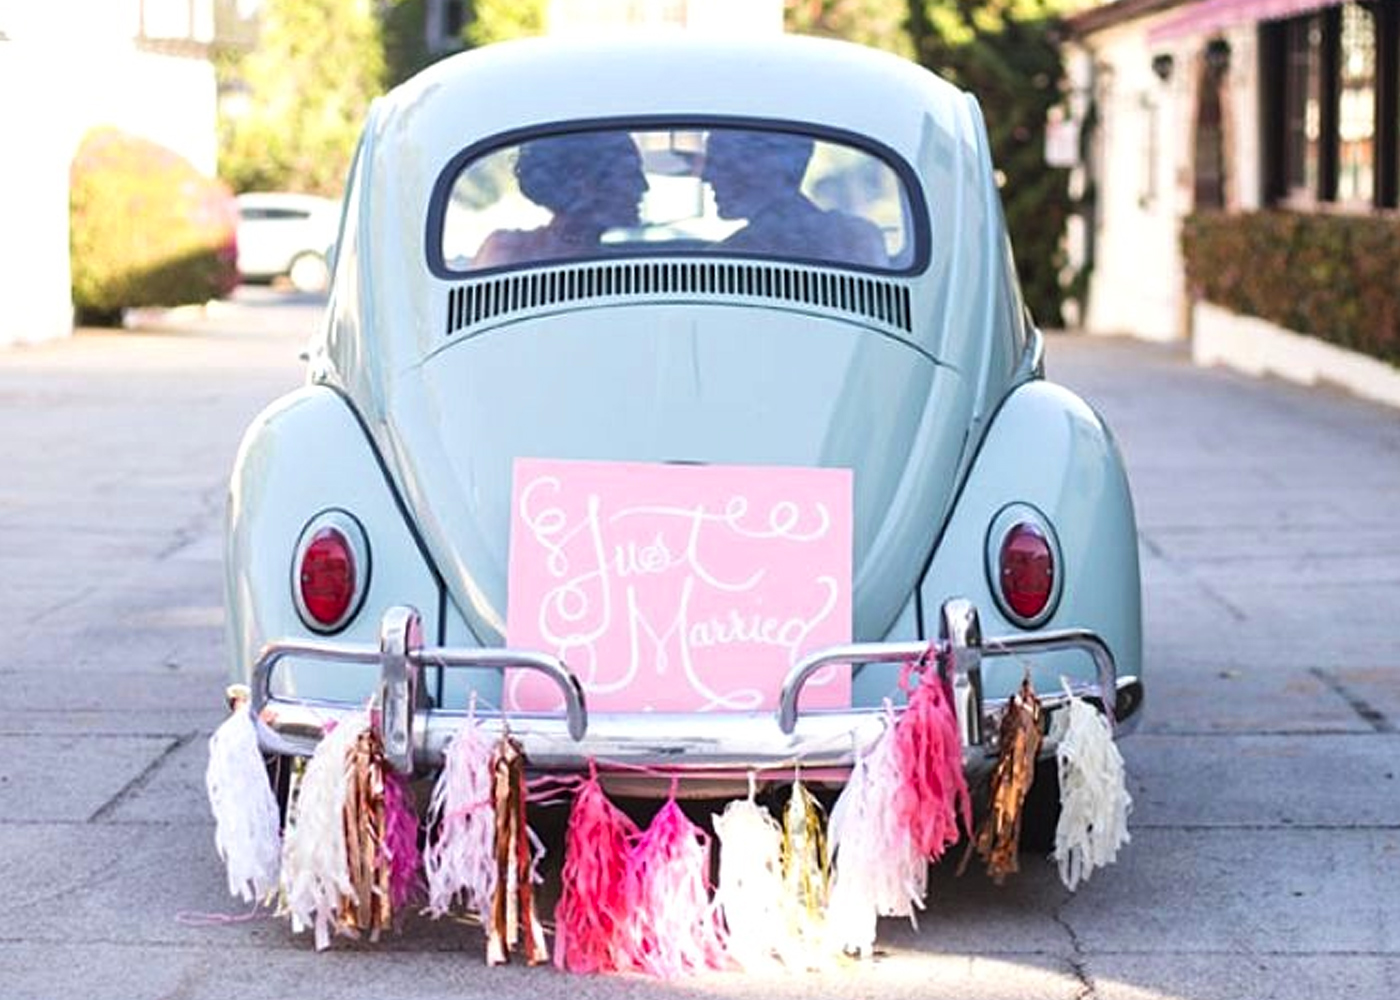 Wedding car rentals in Singapore: Where to hire Volkswagen Beetles, limousines and Bentleys for your big day